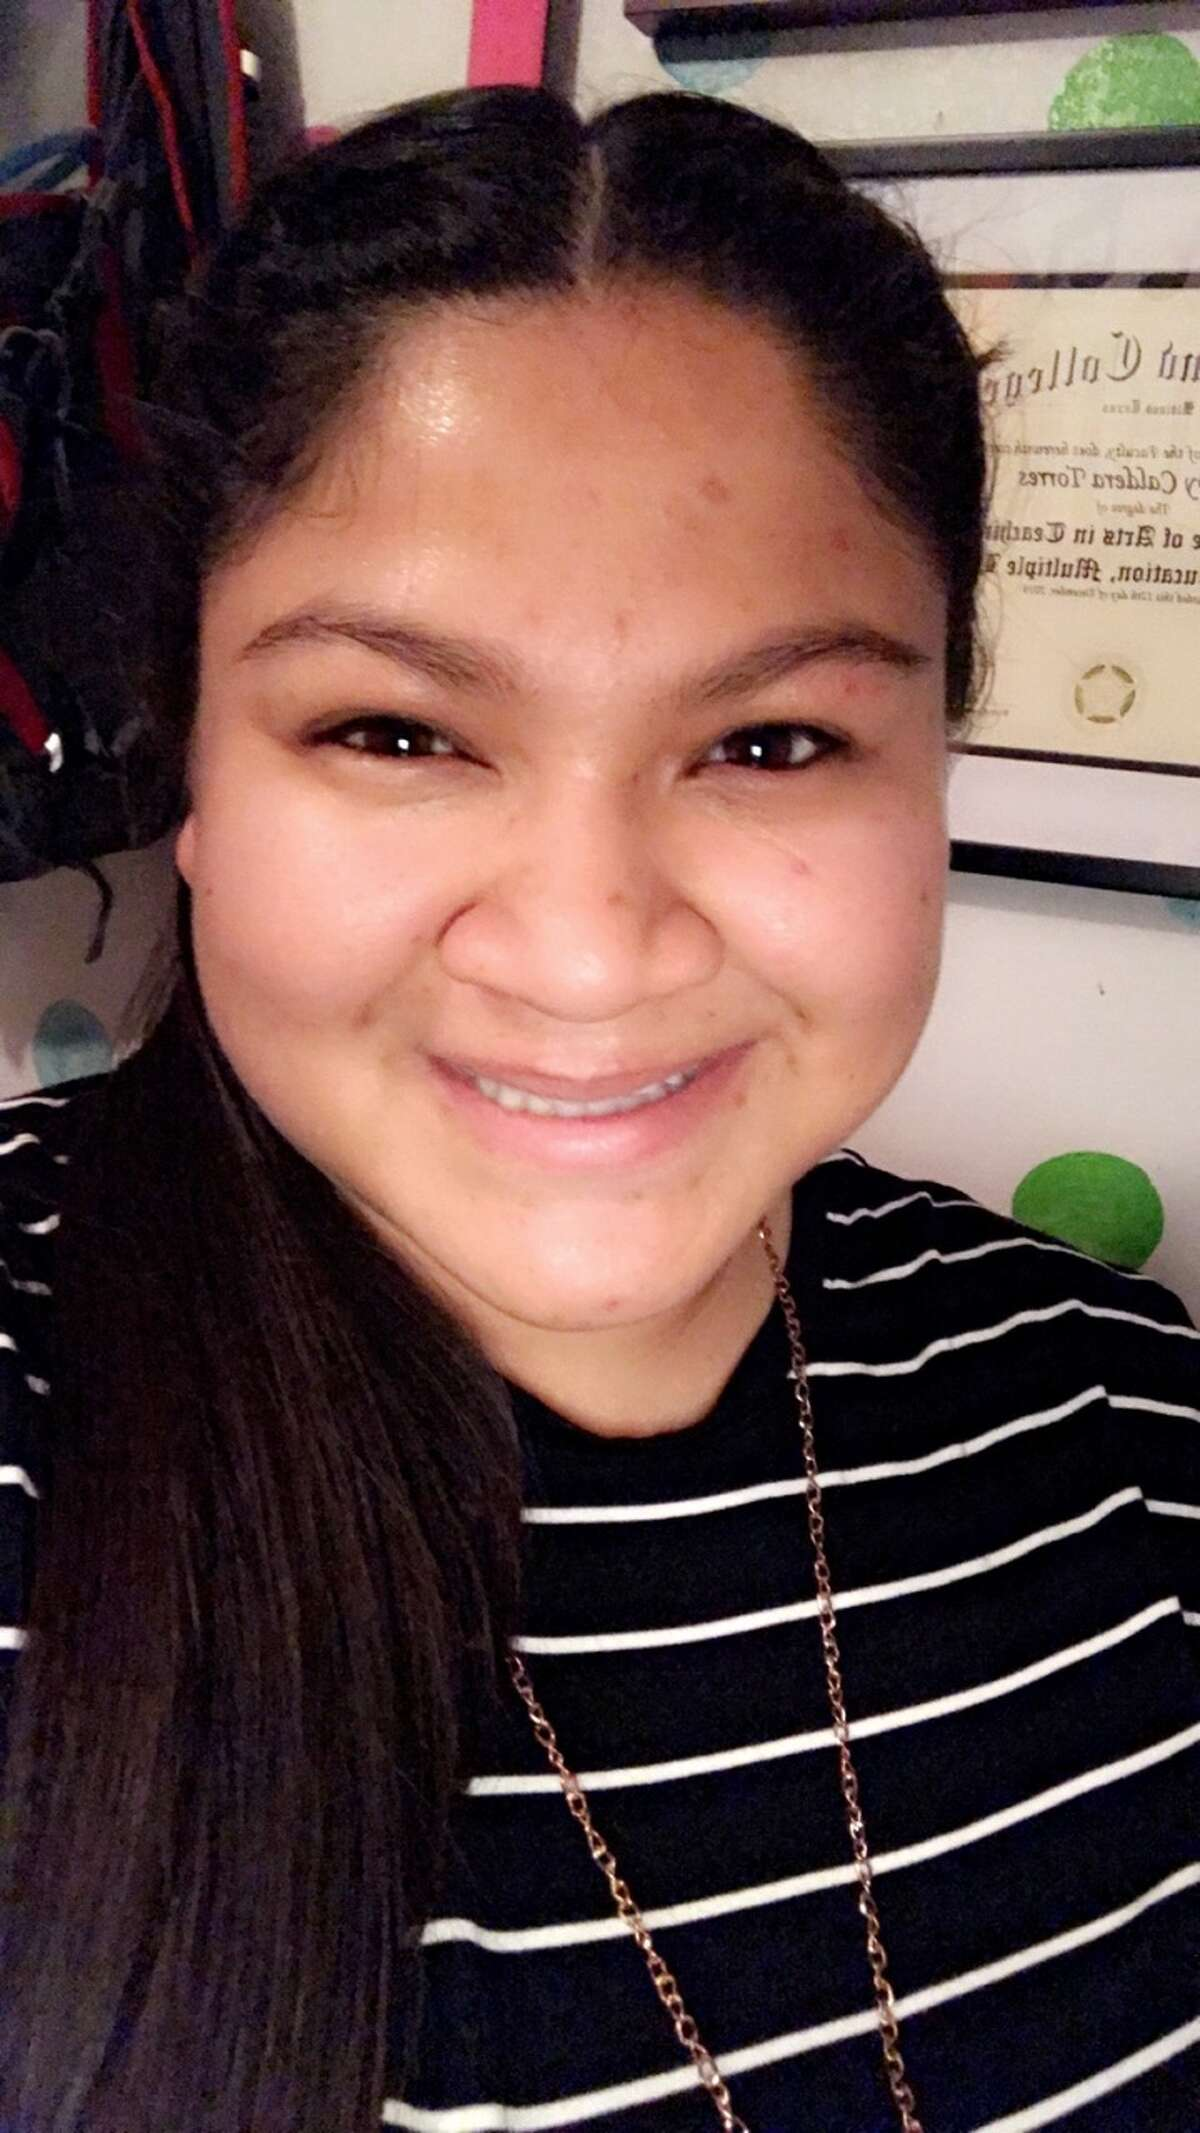 """Fabby Torres' primary goal is to teach Pre-K and help others achieve their goals.""""I want to stay in Midland because this is my community,"""" she said. """"People in my life made a difference with me, and I will strive to make a difference for others. I want to educate the younger minds and help guide them toward their future."""""""